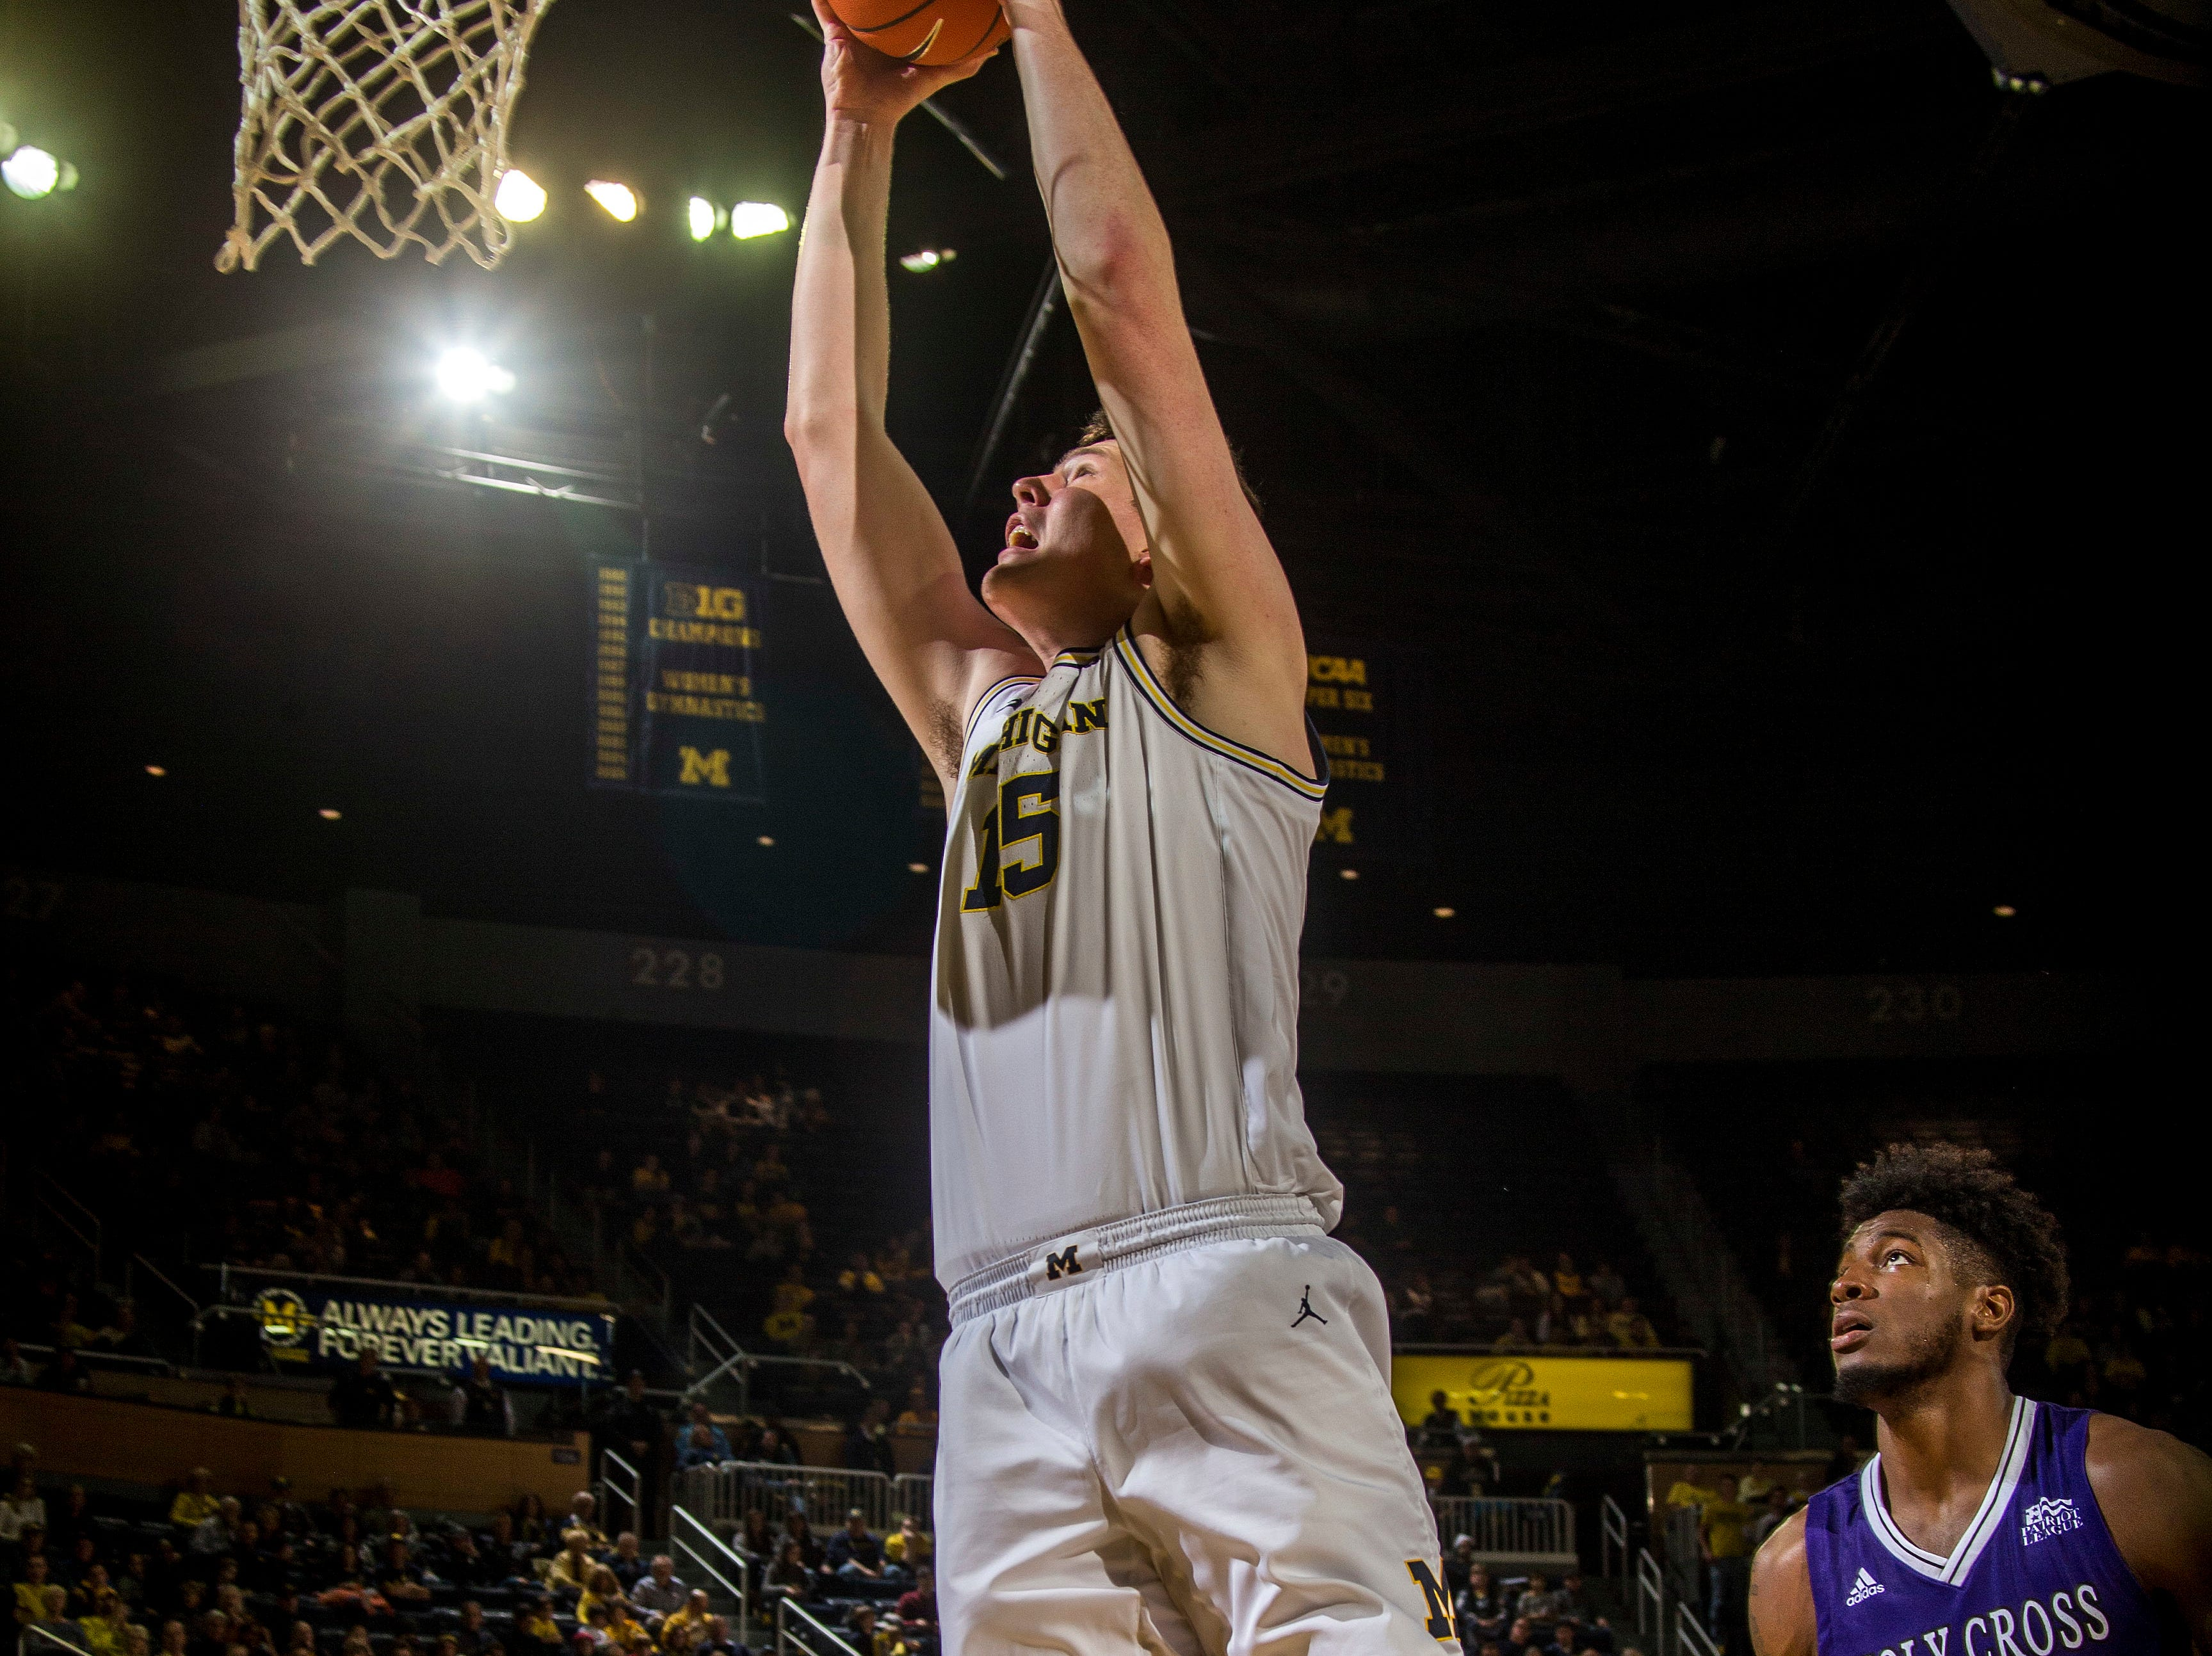 Michigan center Jon Teske (15) dunks the ball while watched by Holy Cross forward Jehyve Floyd (30) in the second half of an NCAA college basketball game at Crisler Center in Ann Arbor, Mich., Saturday, Nov. 10, 2018. (AP Photo/Tony Ding)